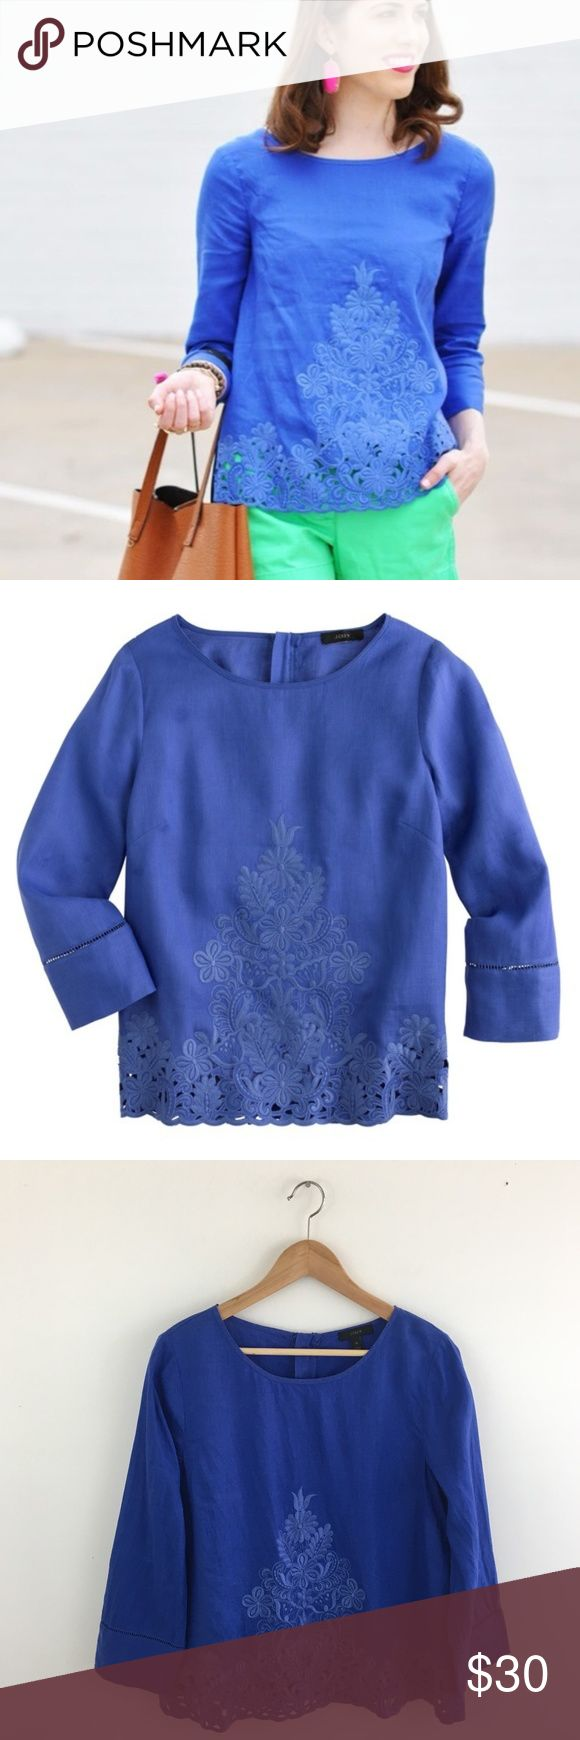 """J. Crew Embroidered Linen Top in Blue Size 12 J. Crew Embroidered Linen Top in Blue. Size 12. Excellent Used Condition. No visible flaws. GORGEOUS top!! Love the embroidery detail and gold back zipper! Pullover style with scoop neck. 100% Linen. Machine wash cold. Tumble dry low. Chest: 19"""". Shoulder: 16"""". Length: 24"""". J. Crew Tops Blouses"""